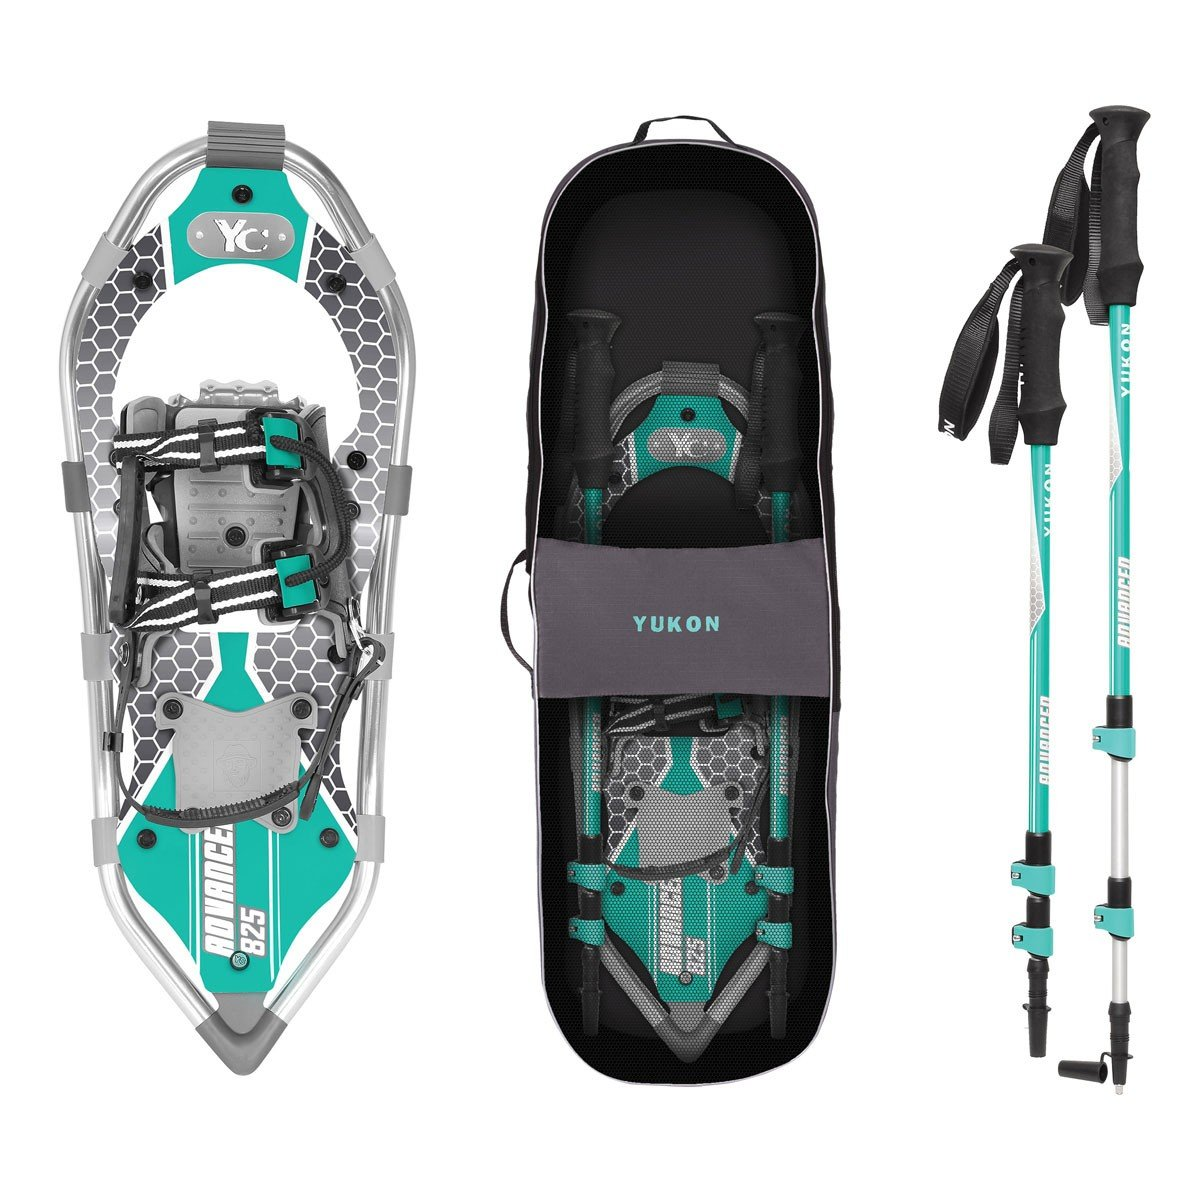 Yukon Charlie's Advanced 8x25 in. Women's Snowshoe Kit w/ Poles & Bag | 80-3006K by Yukon Charlie's